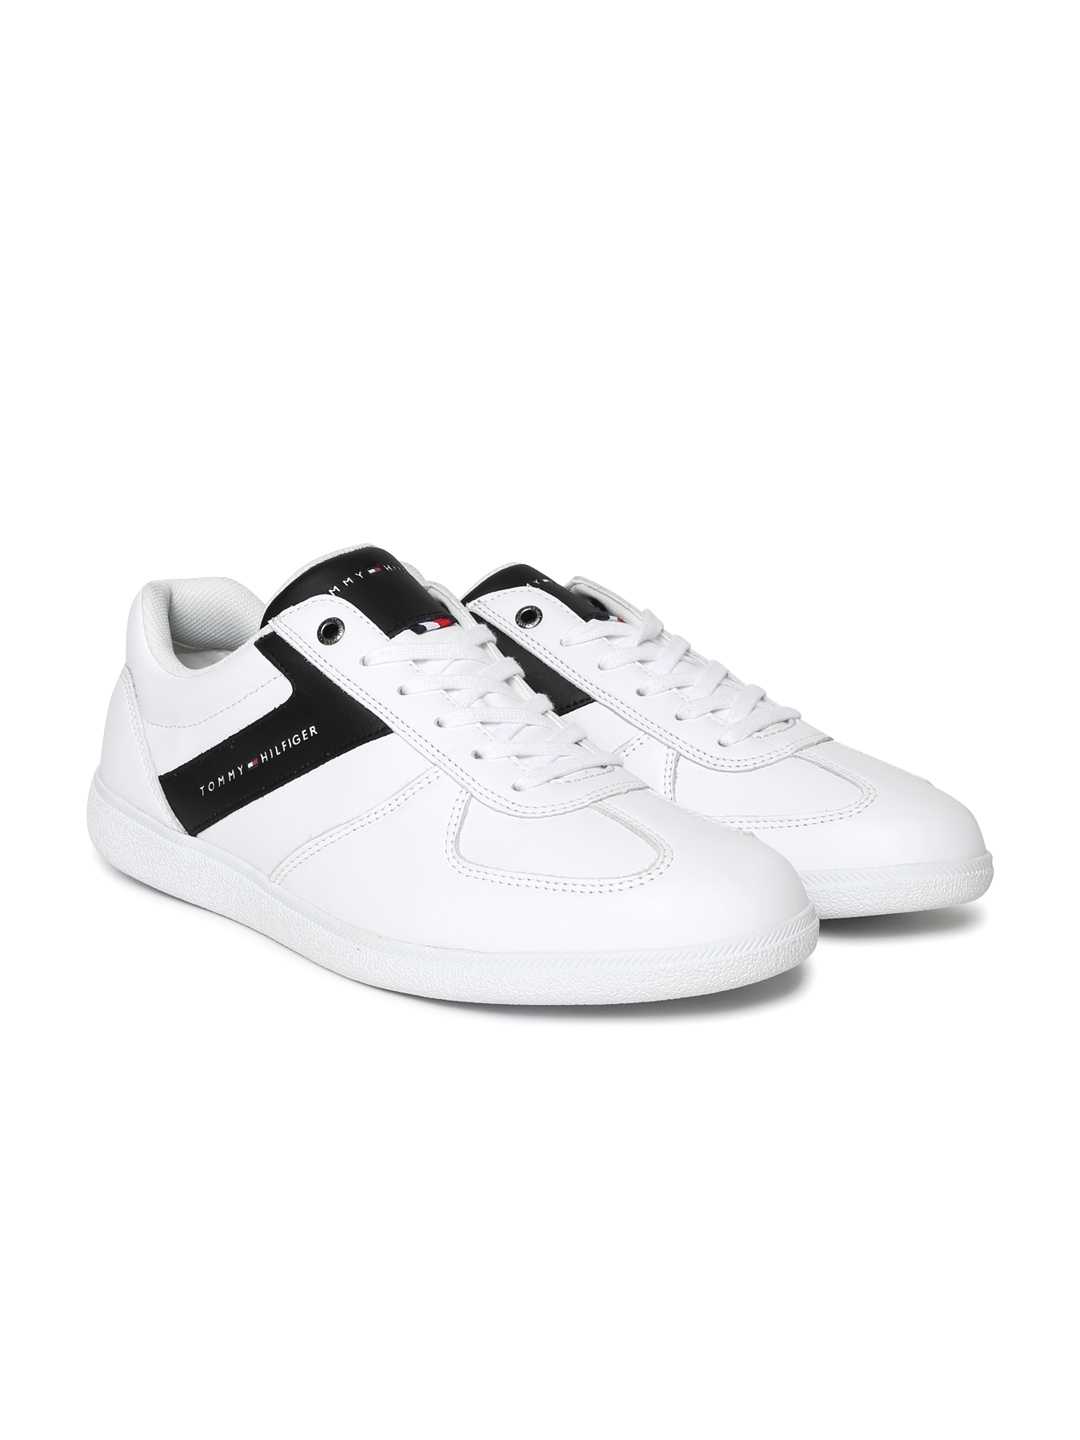 8c489f3a0a5f43 Buy Tommy Hilfiger Men White Sneakers - Casual Shoes for Men 2197190 ...